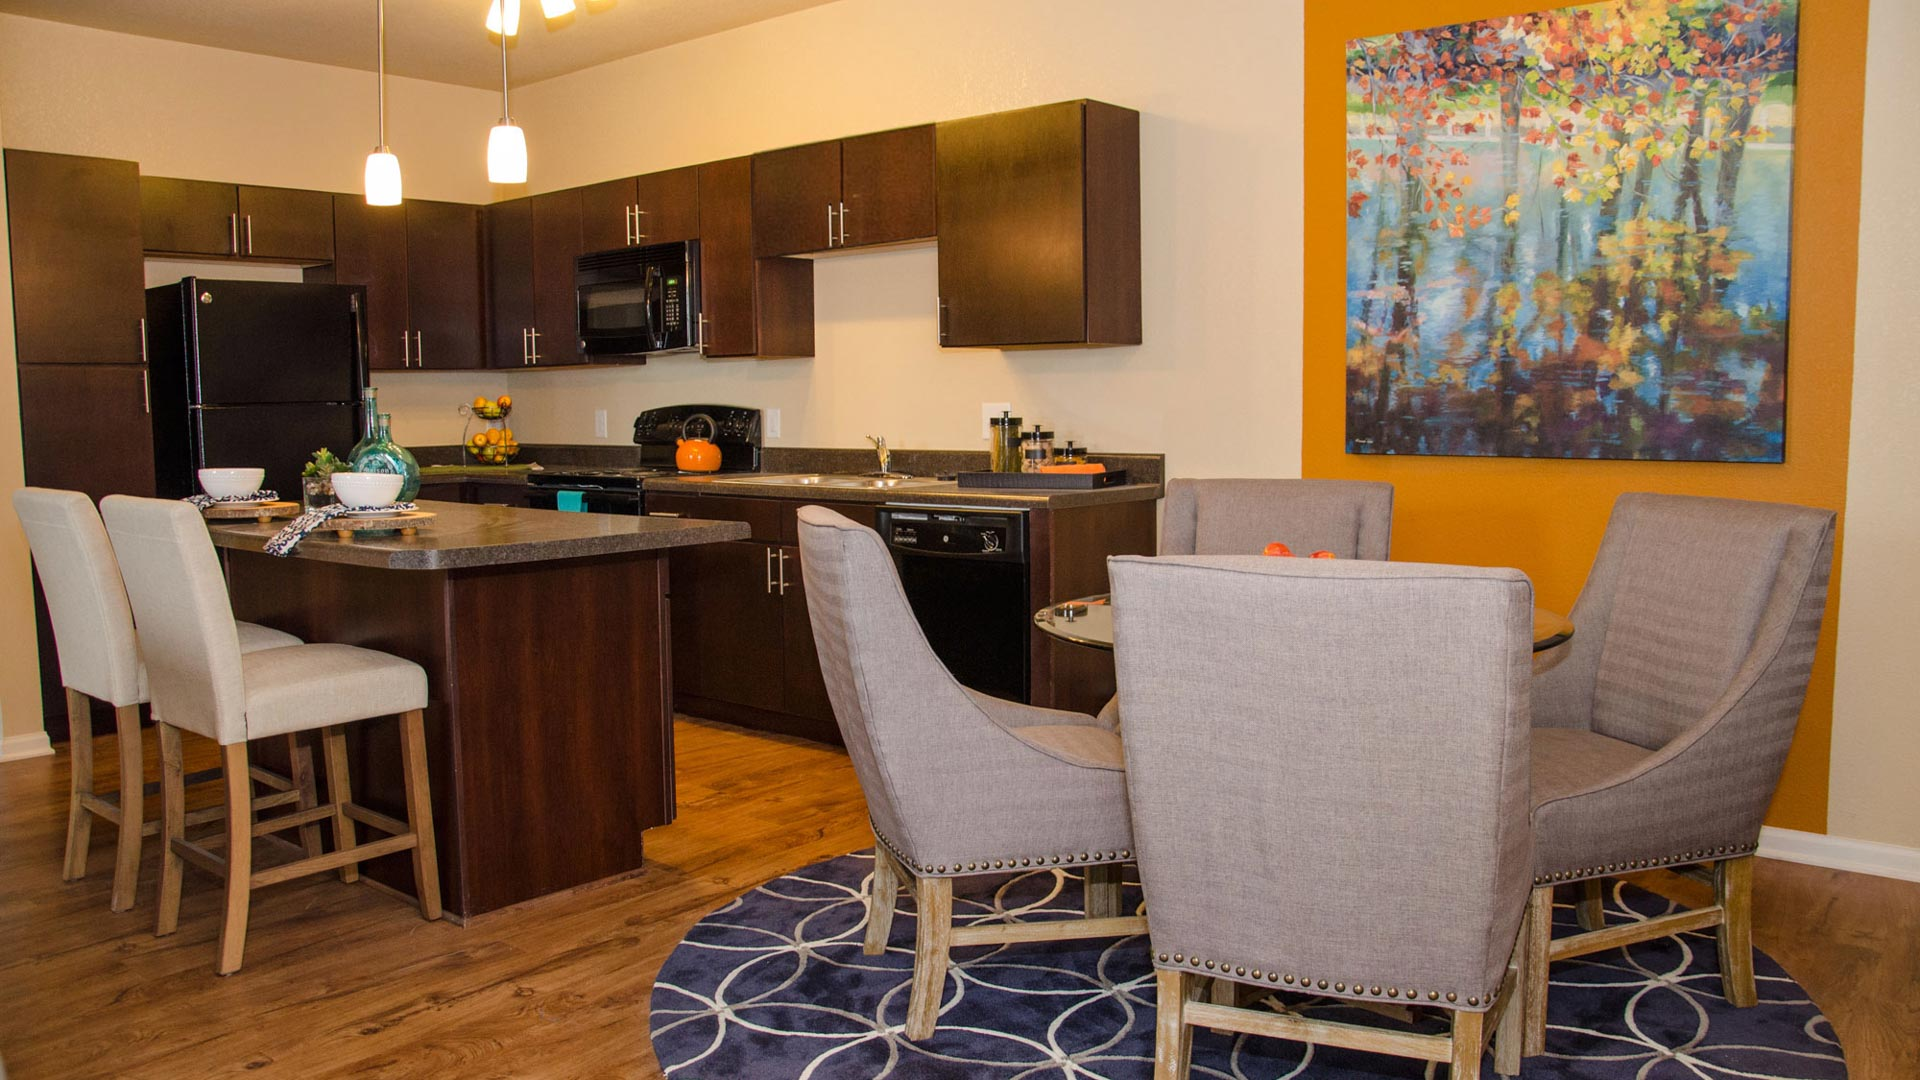 Springs at Bettendorf Apartments in Quad Cities Kitchen and Accent Wall